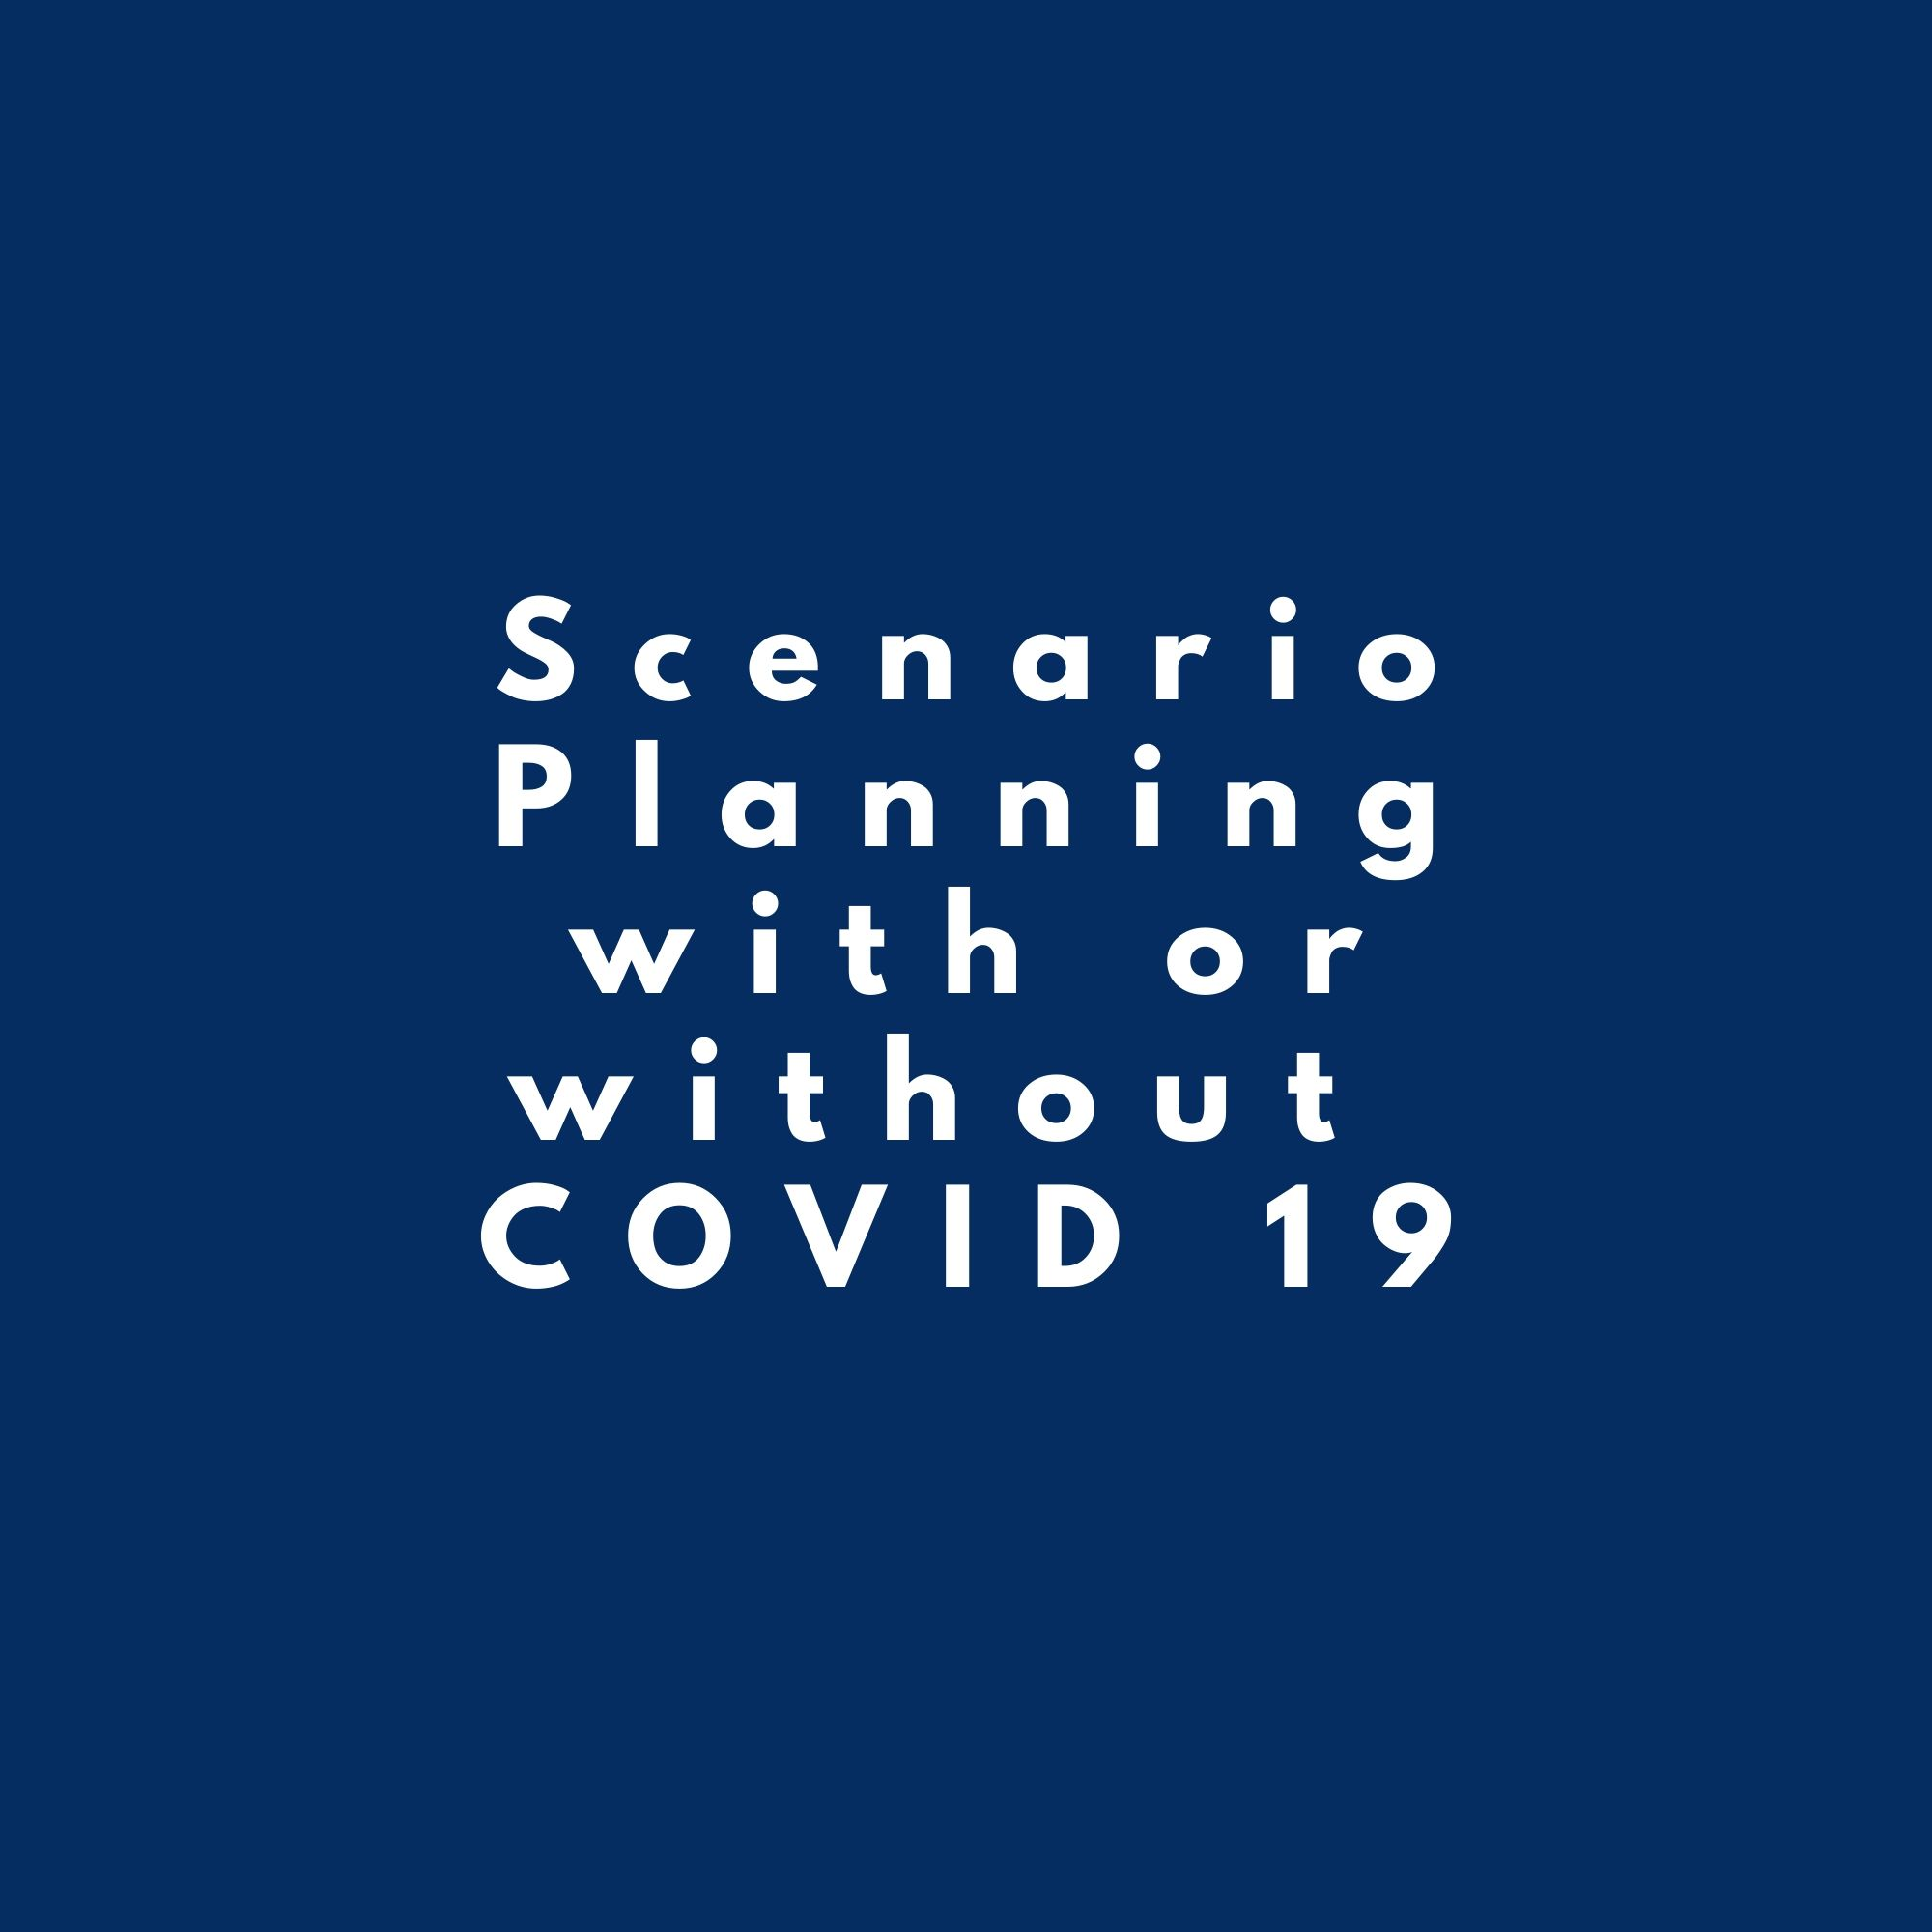 Leader's Toolkit, scenario planning with or without COVID-19